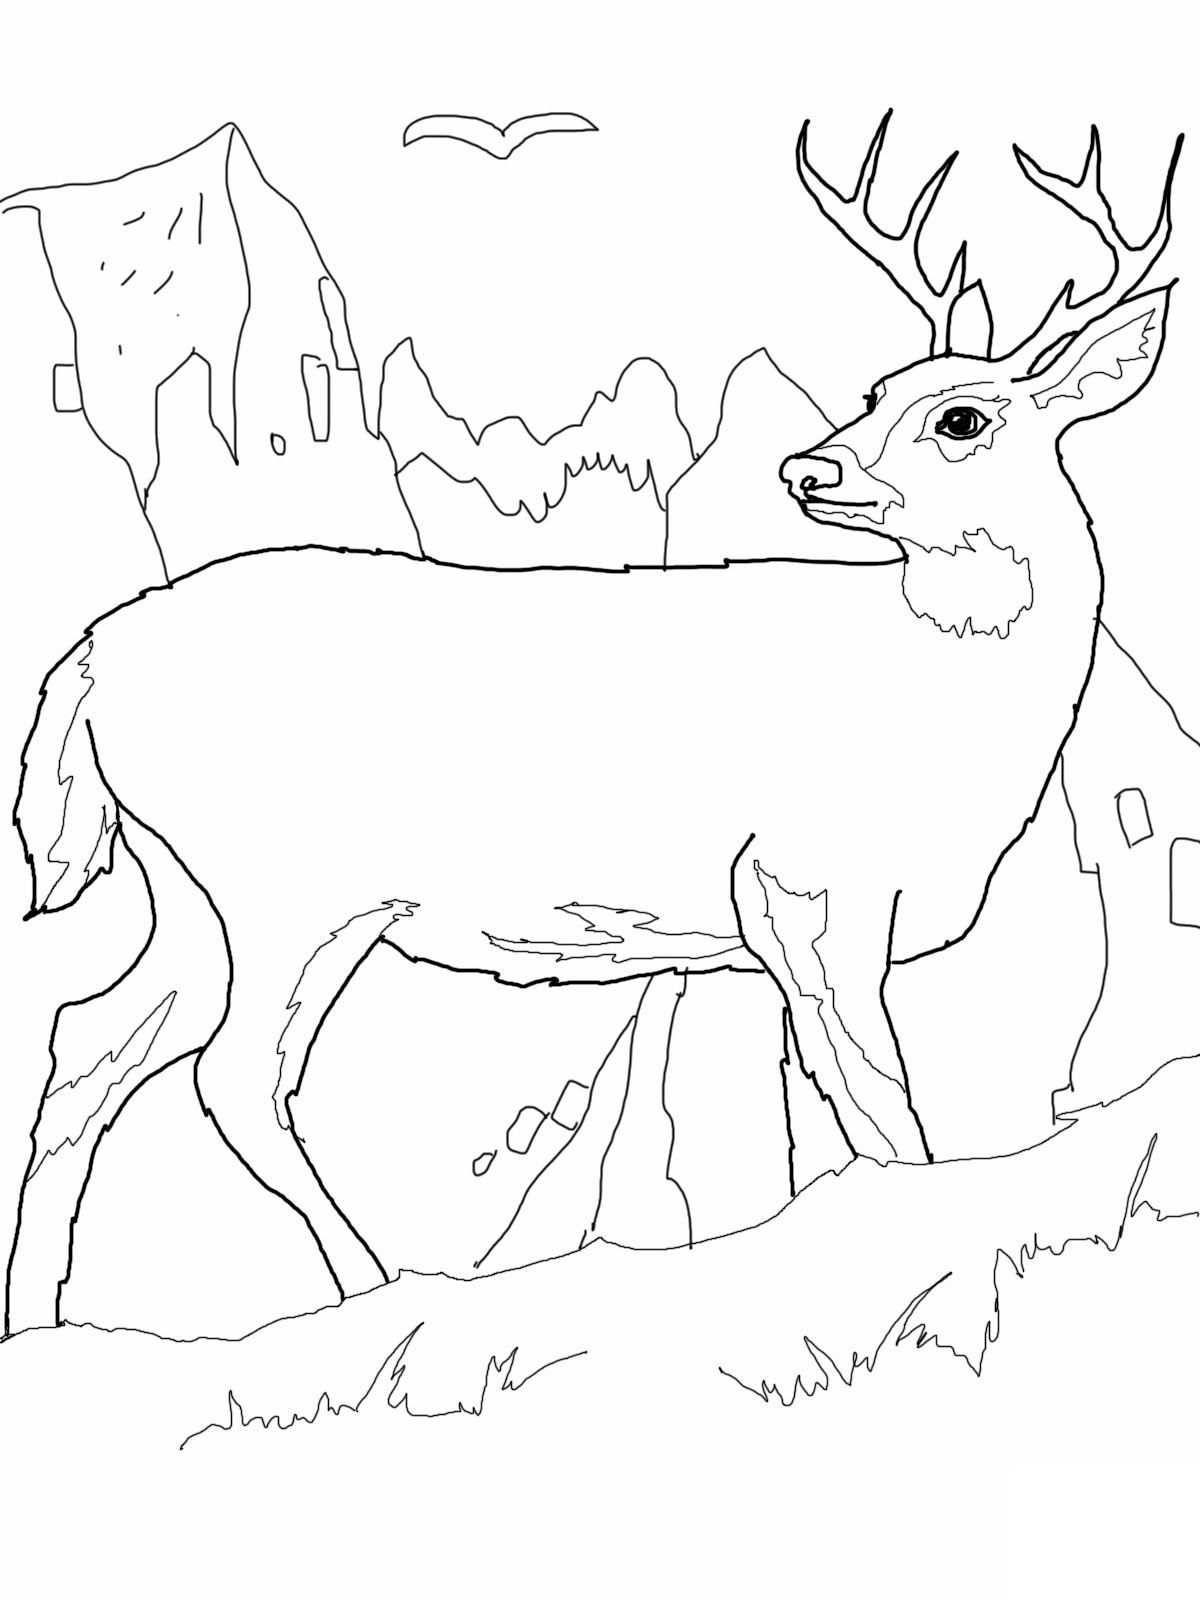 Free Printable Deer Coloring Pages For Kids | Coloring pages ...